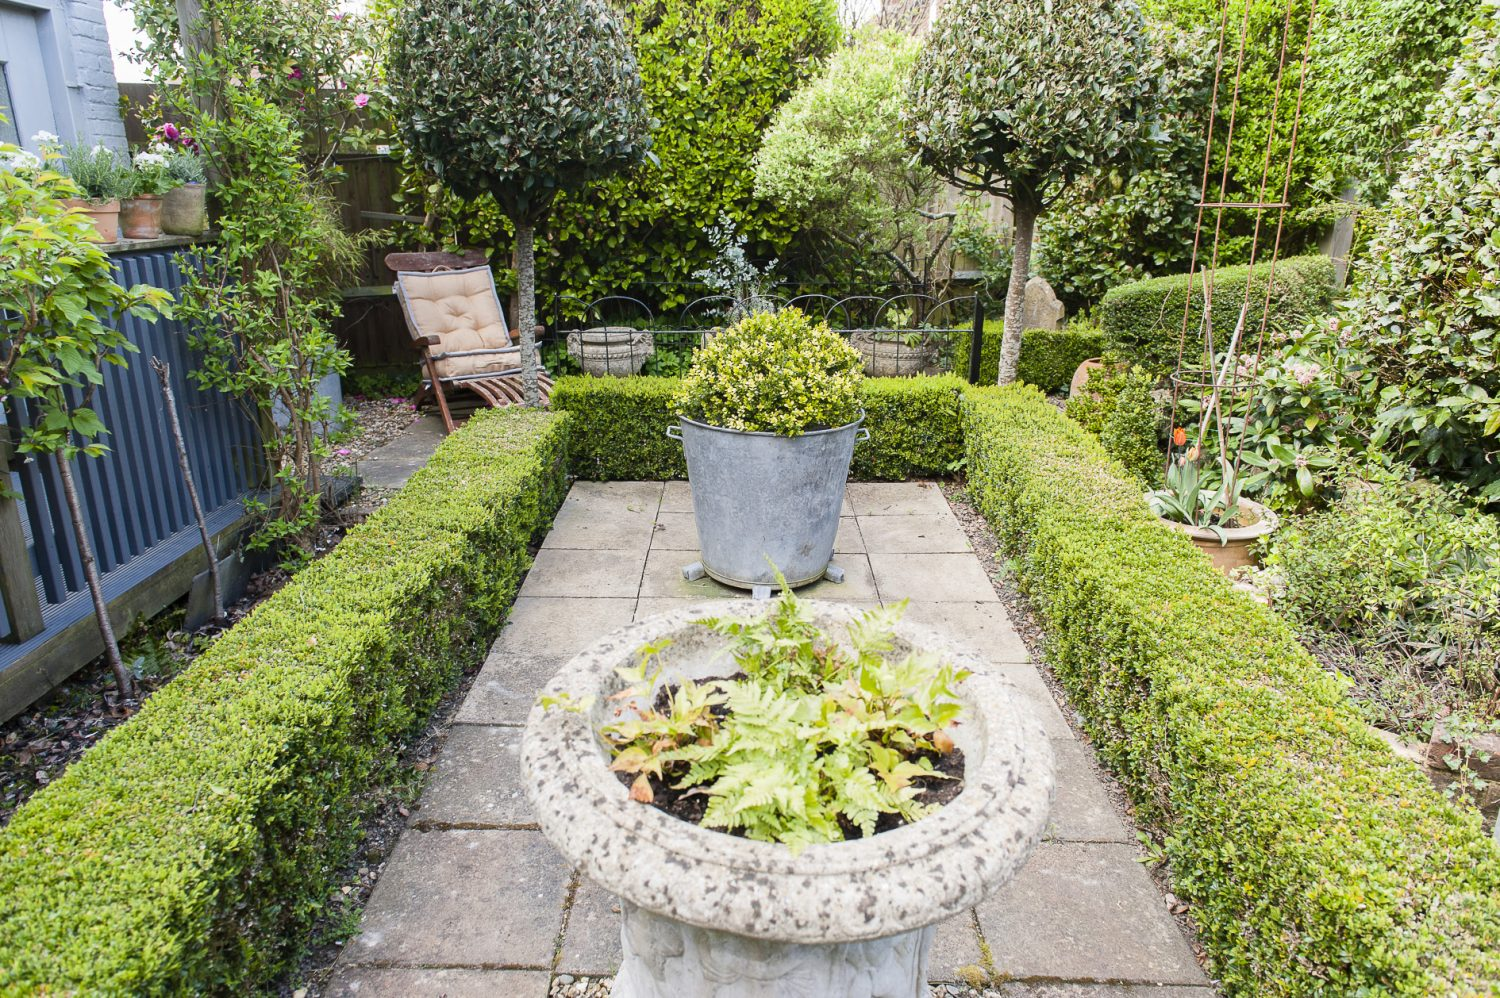 "Evergreen shrubs and topiary help to bring a chic, but verdant intimacy to the outdoor seating area. ""The advantage of using mainly evergreens is that I can rely on it being the same throughout the year. And then I can add seasonal colour in pots."" In the winter the whole garden twinkles with fairy lights and makes a magical space to look out into."